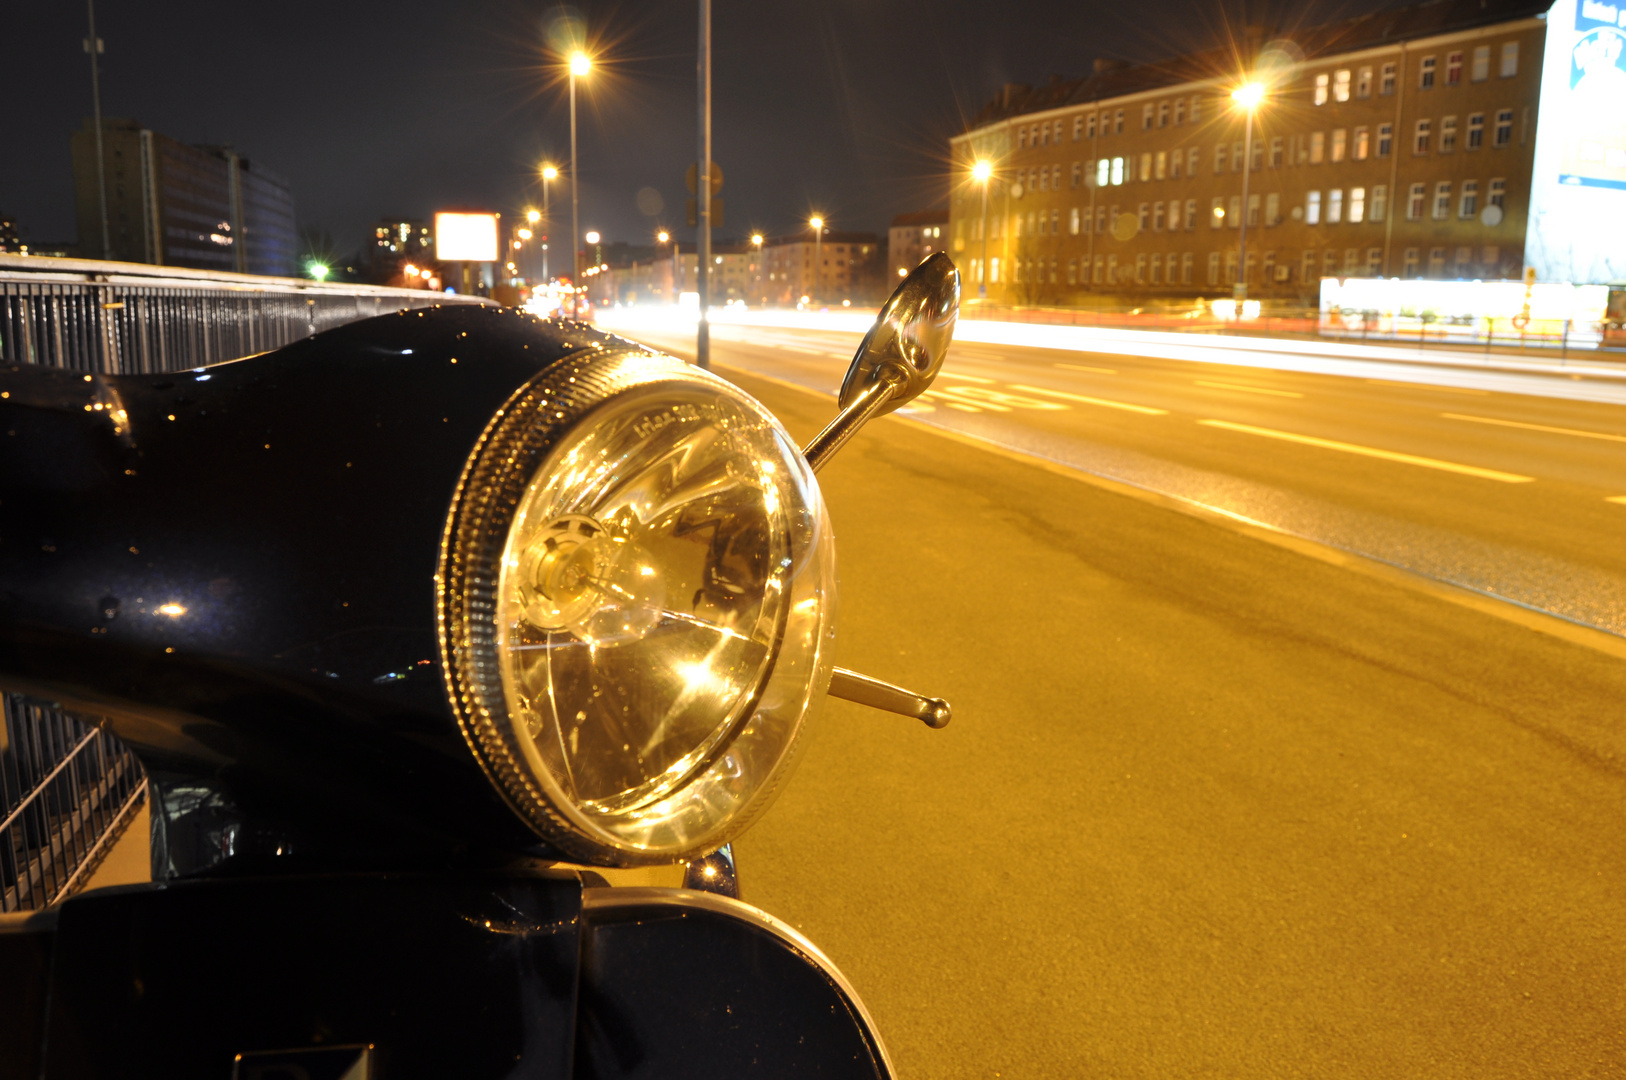 Vespa @ night